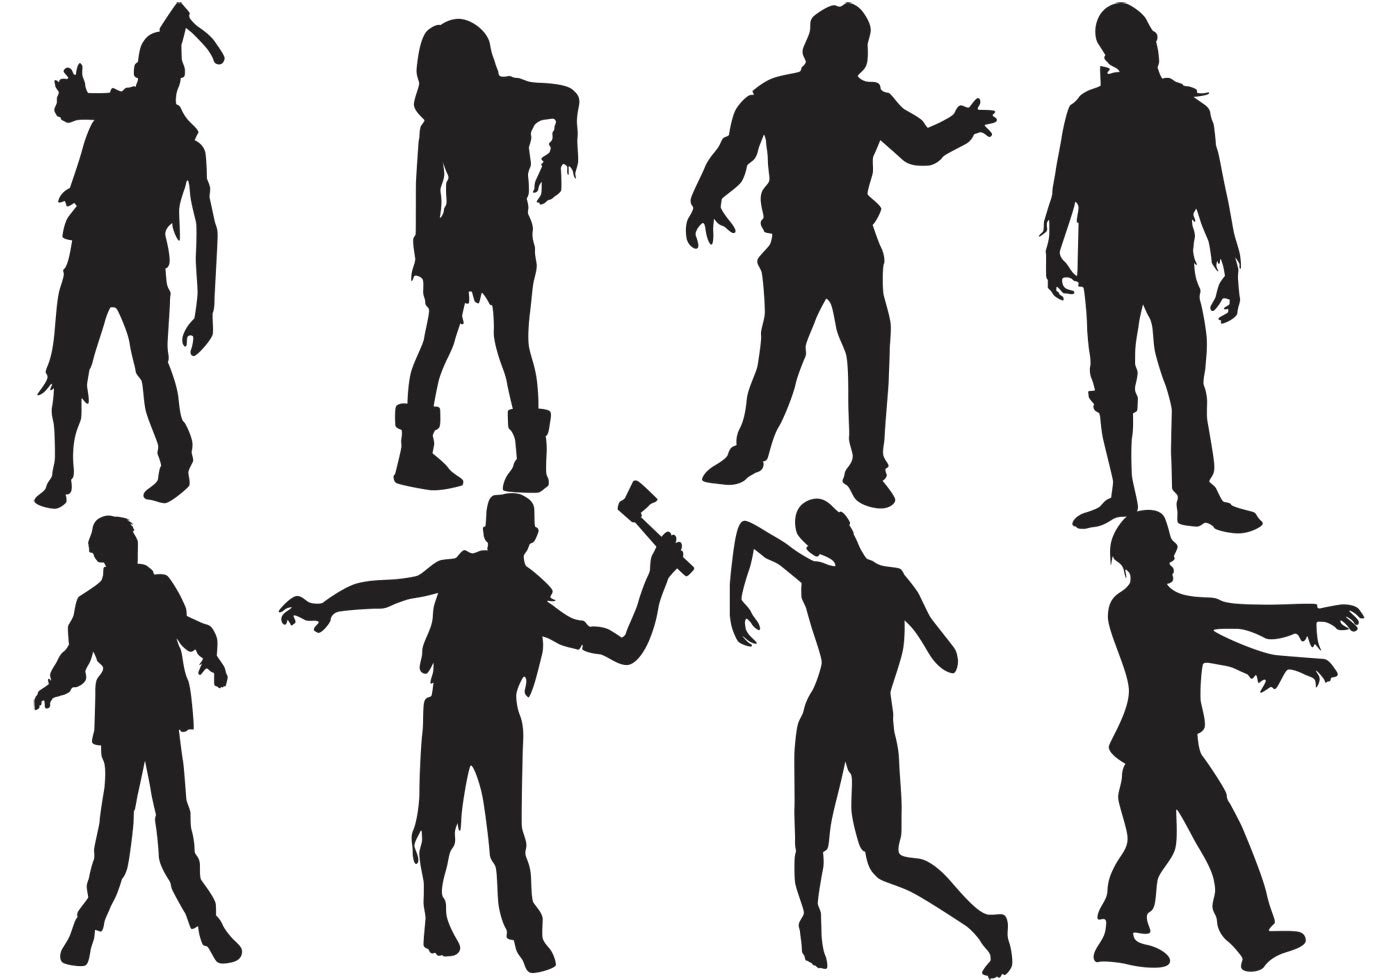 Zombie Silhouettes Vector - Download Free Vectors, Clipart ...